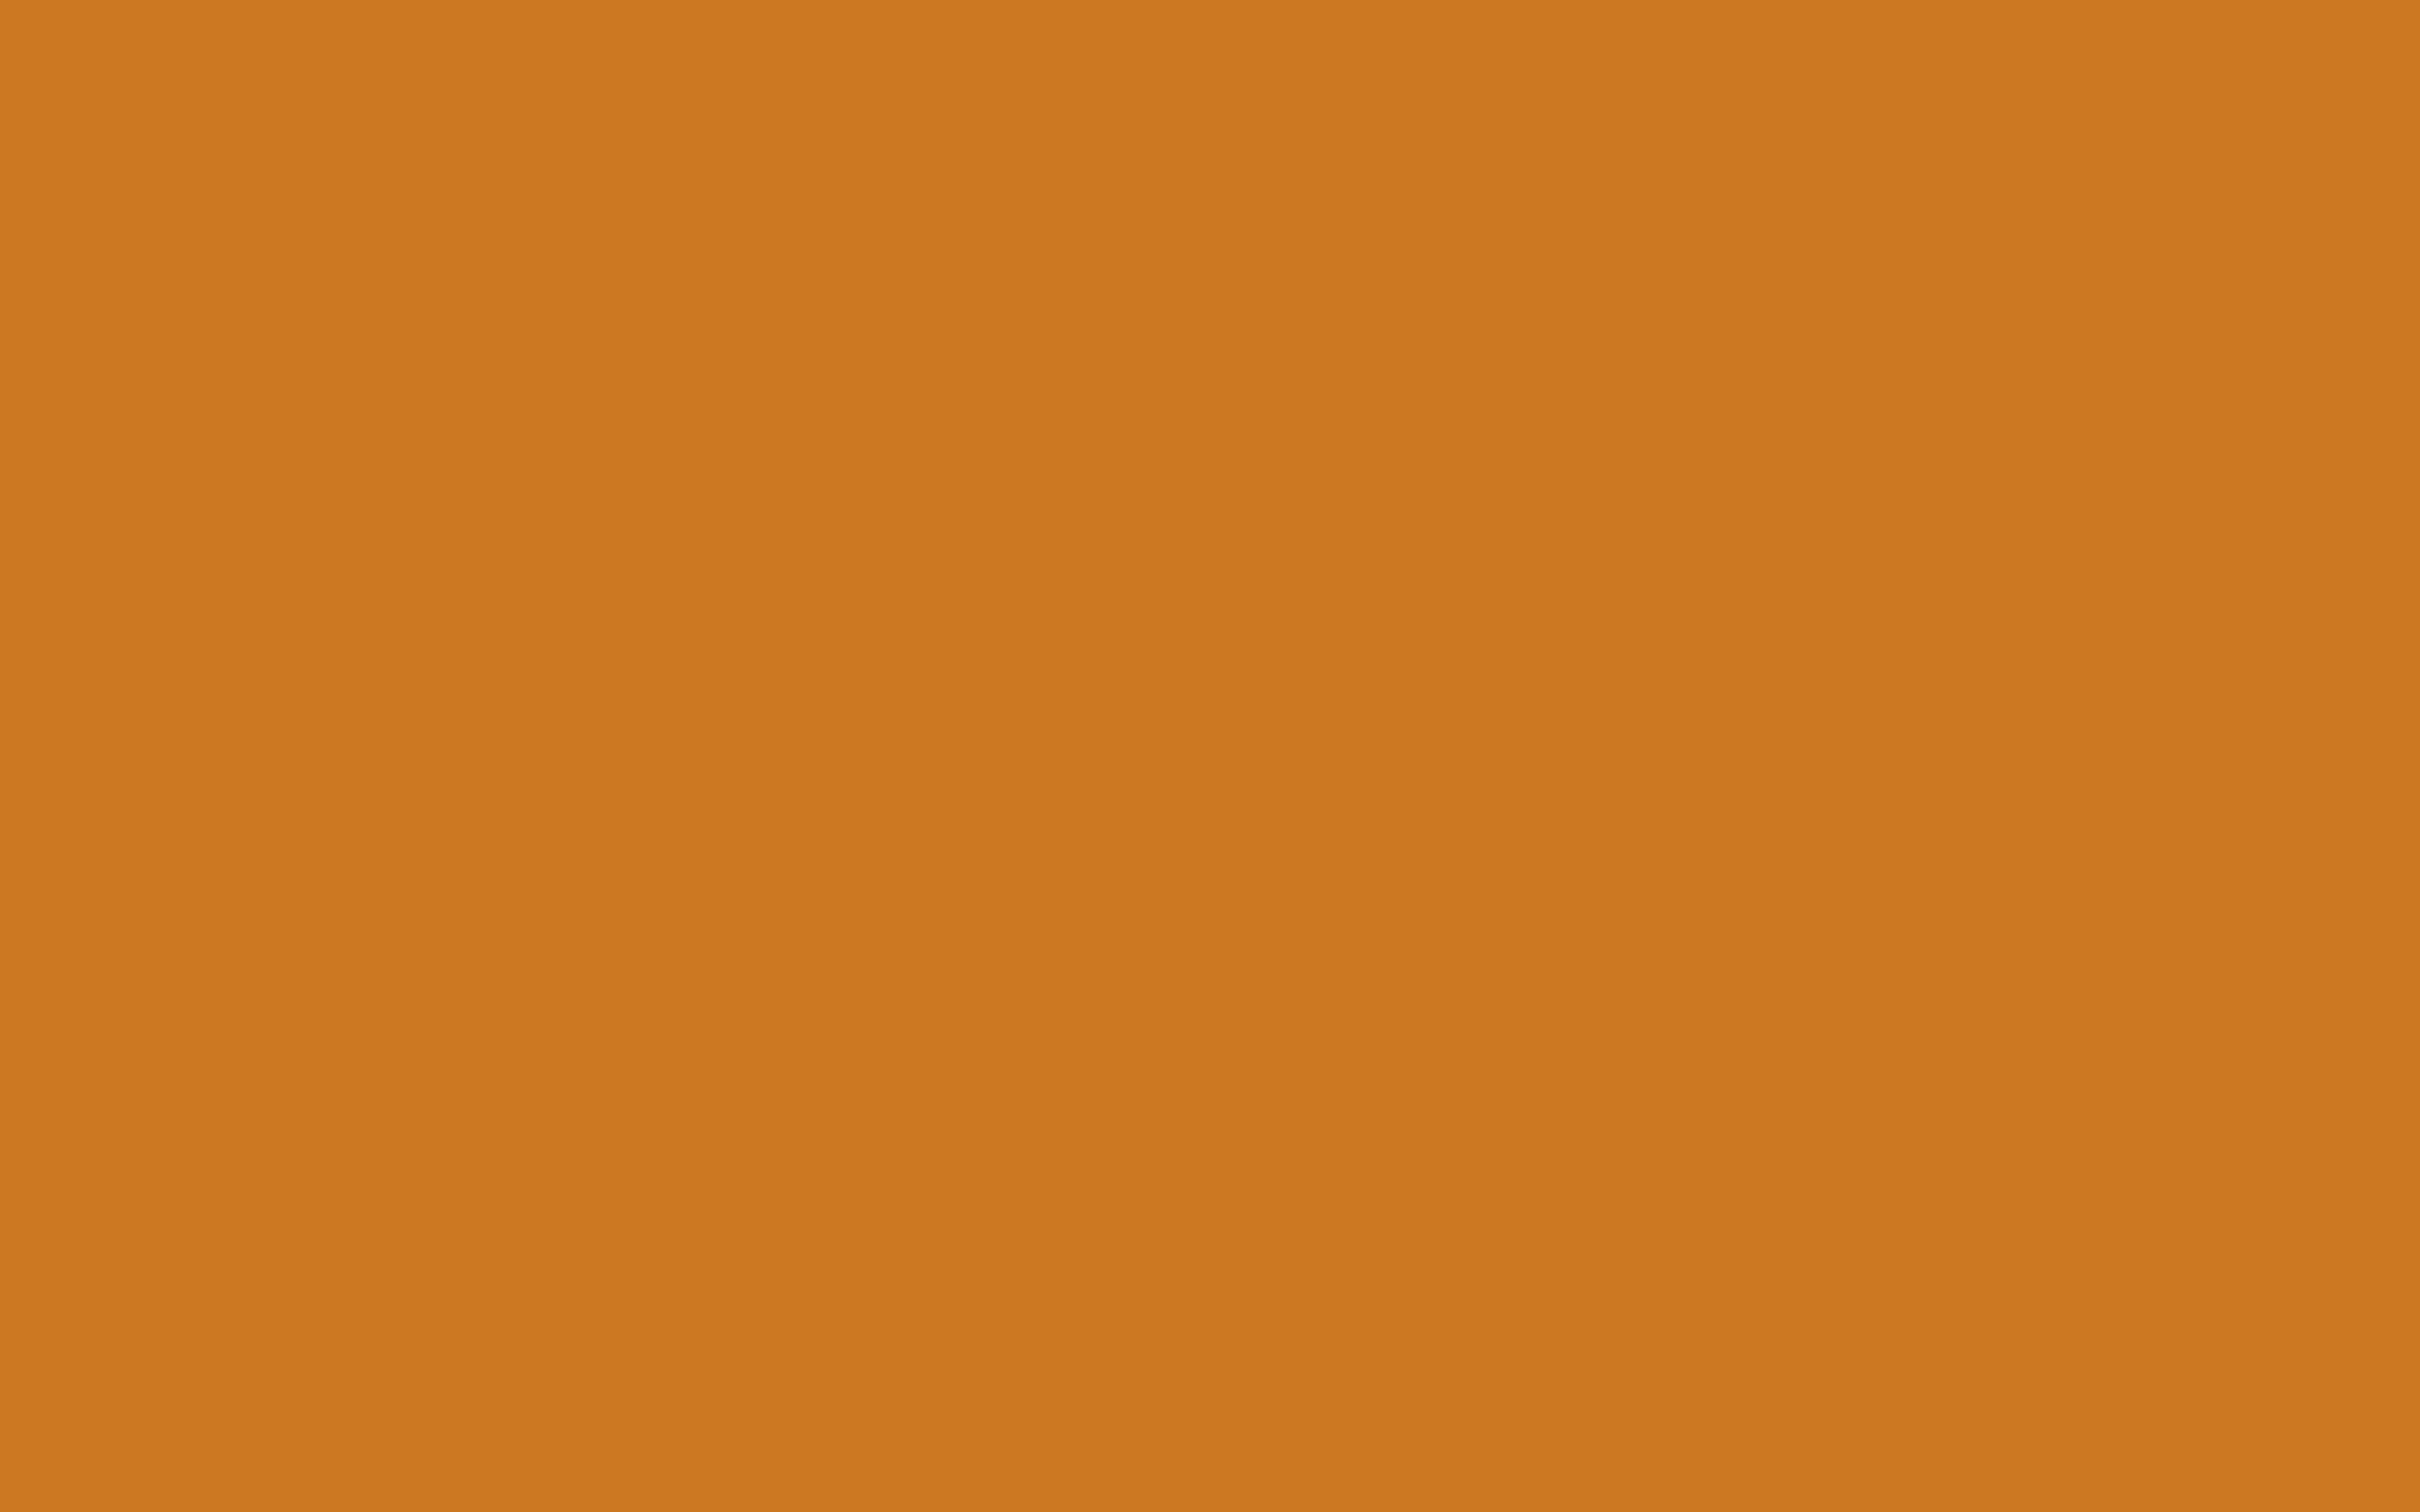 2560x1600 Ochre Solid Color Background